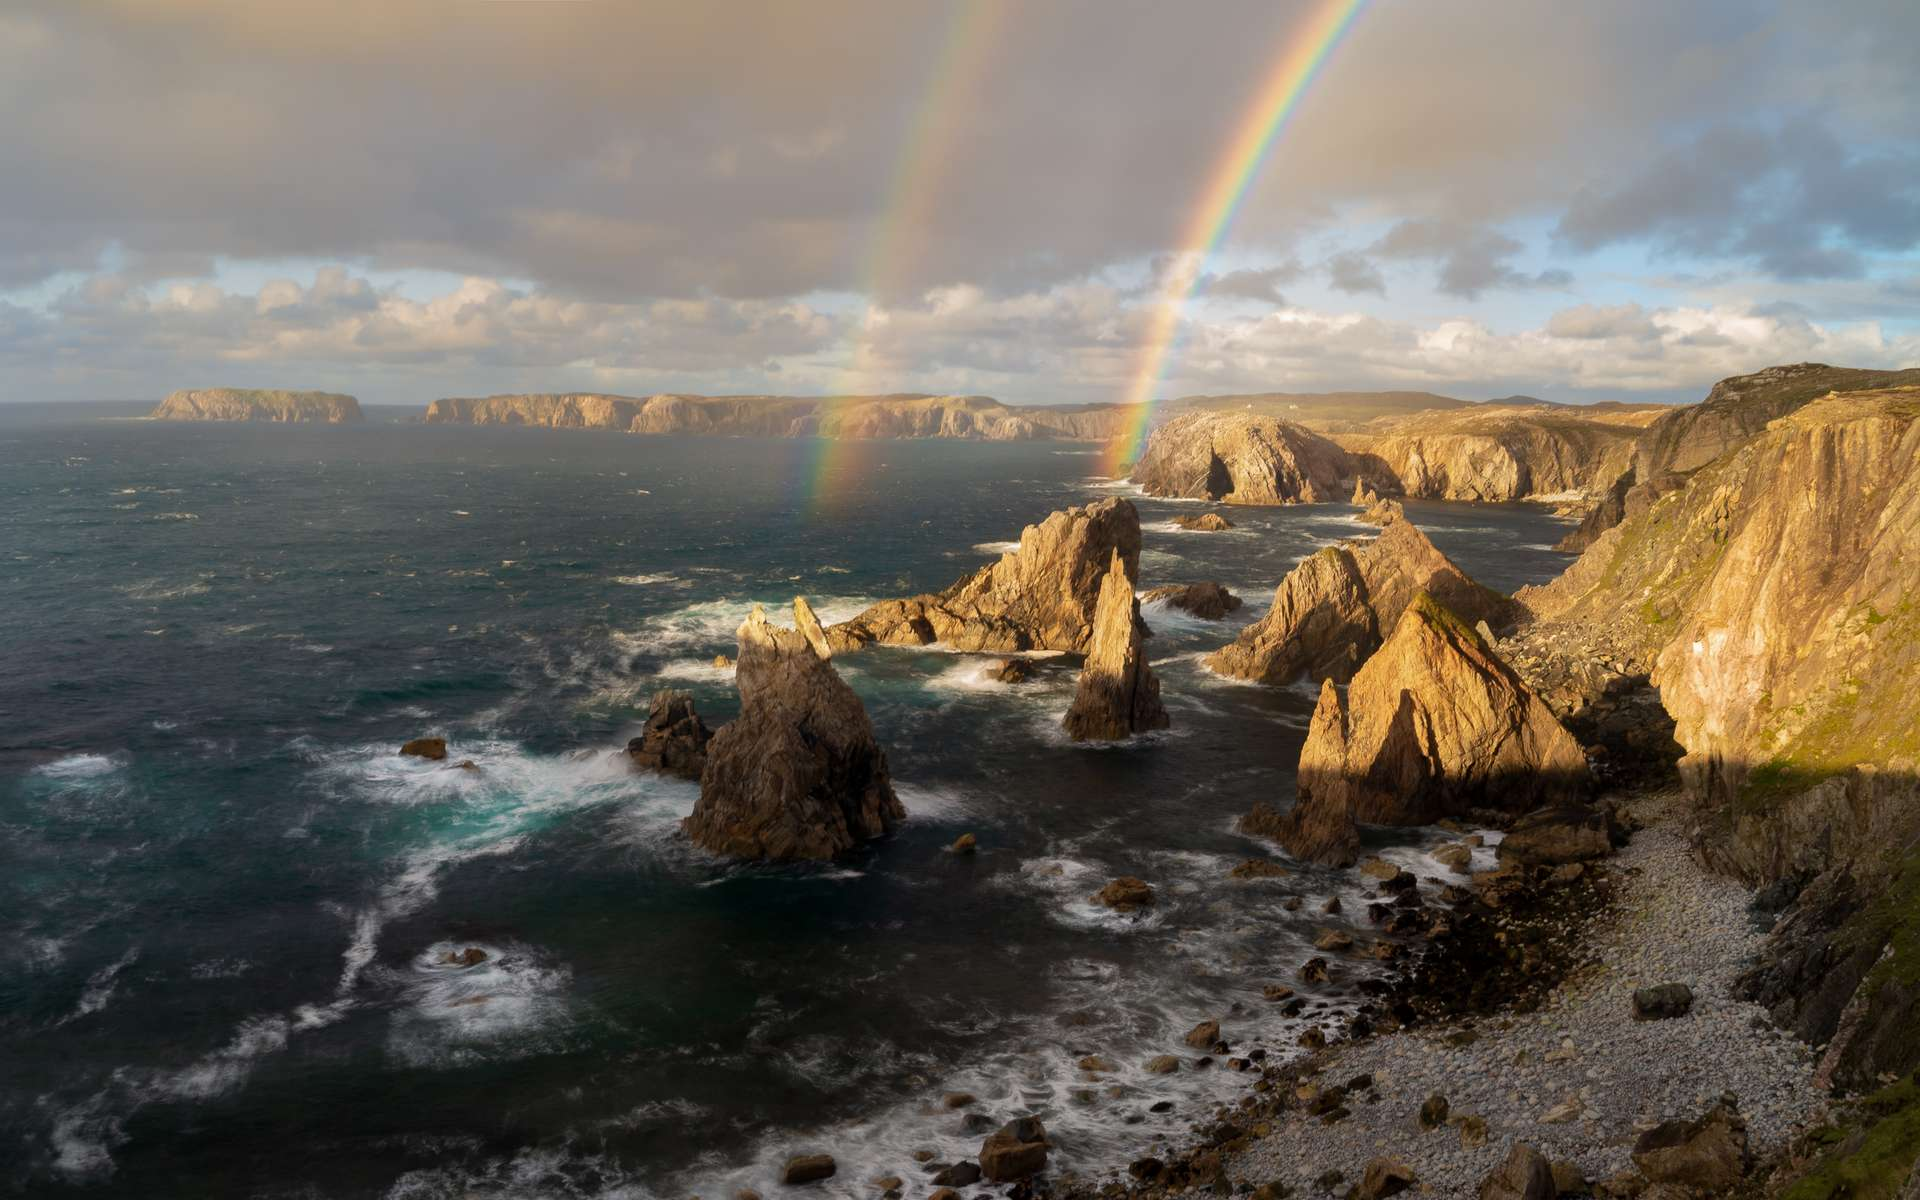 Les plus belles photos météo de l'année. Pinnacles of Light, île de Lewis, Écosse © Richard Fox, Royal Meteorological Society